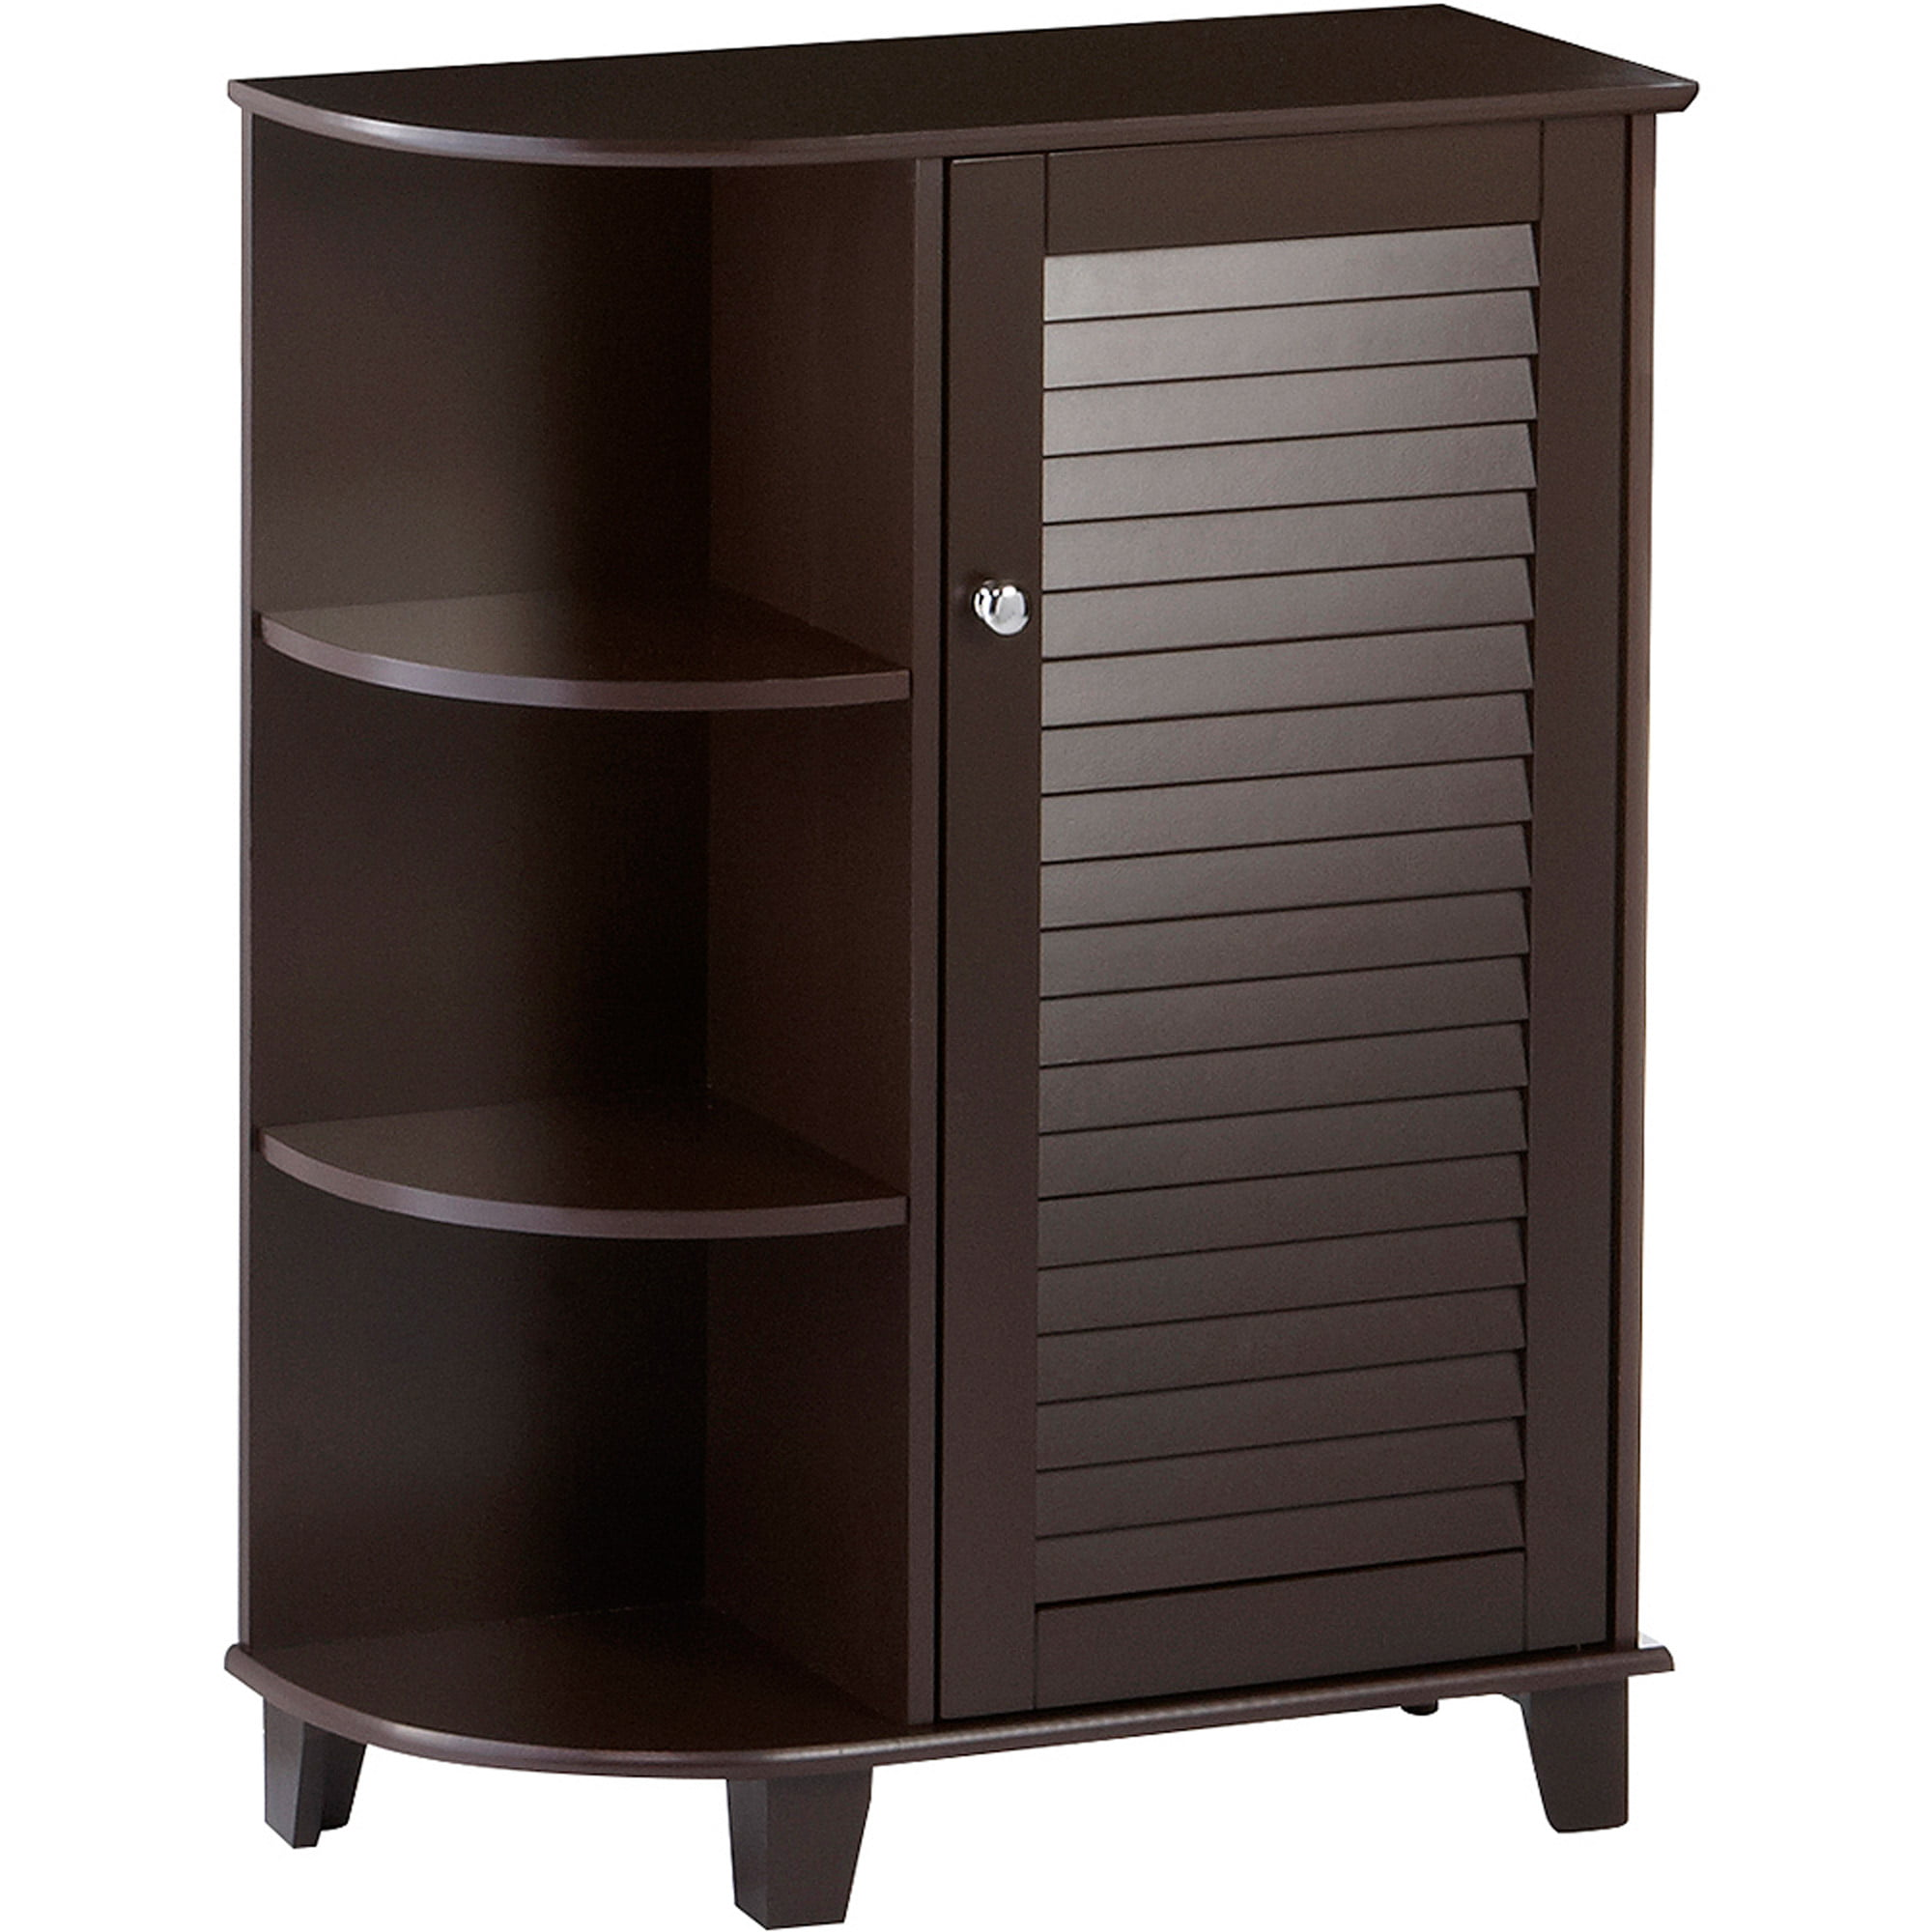 RiverRidge Ellsworth Floor Cabinet with Side Shelves, Espresso ...